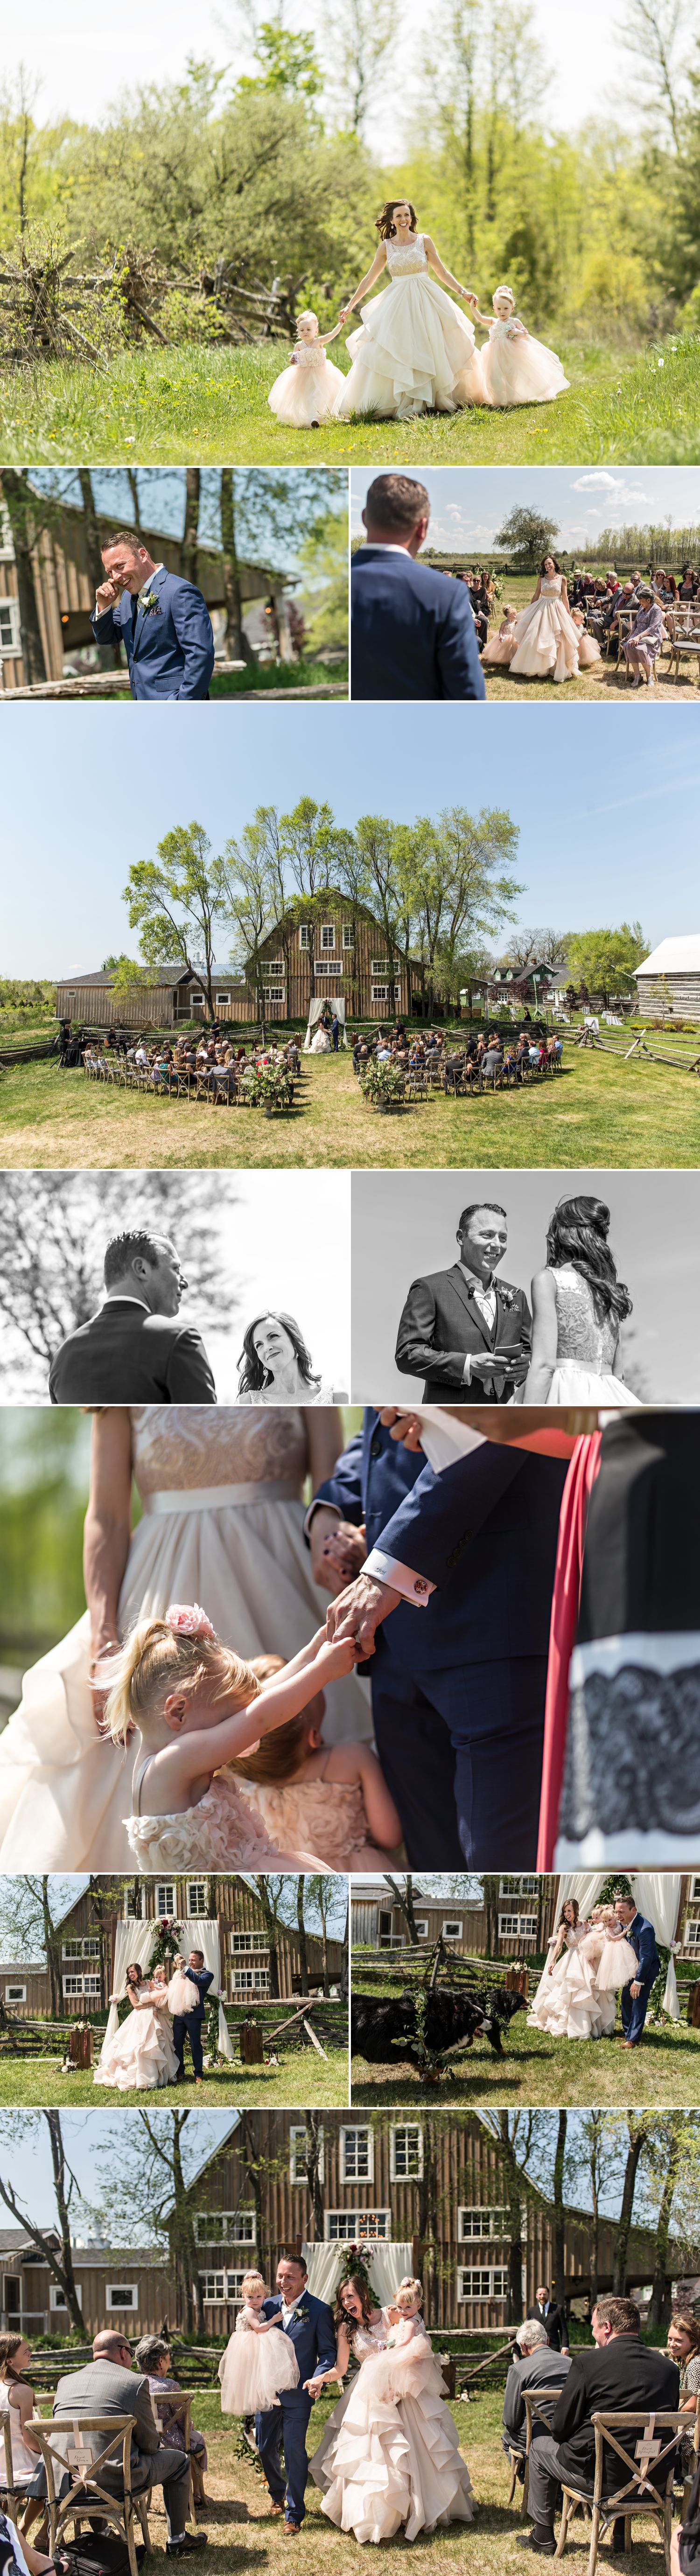 candid moments at stephanie steve wedding ceremony at stonefields heritage new barn